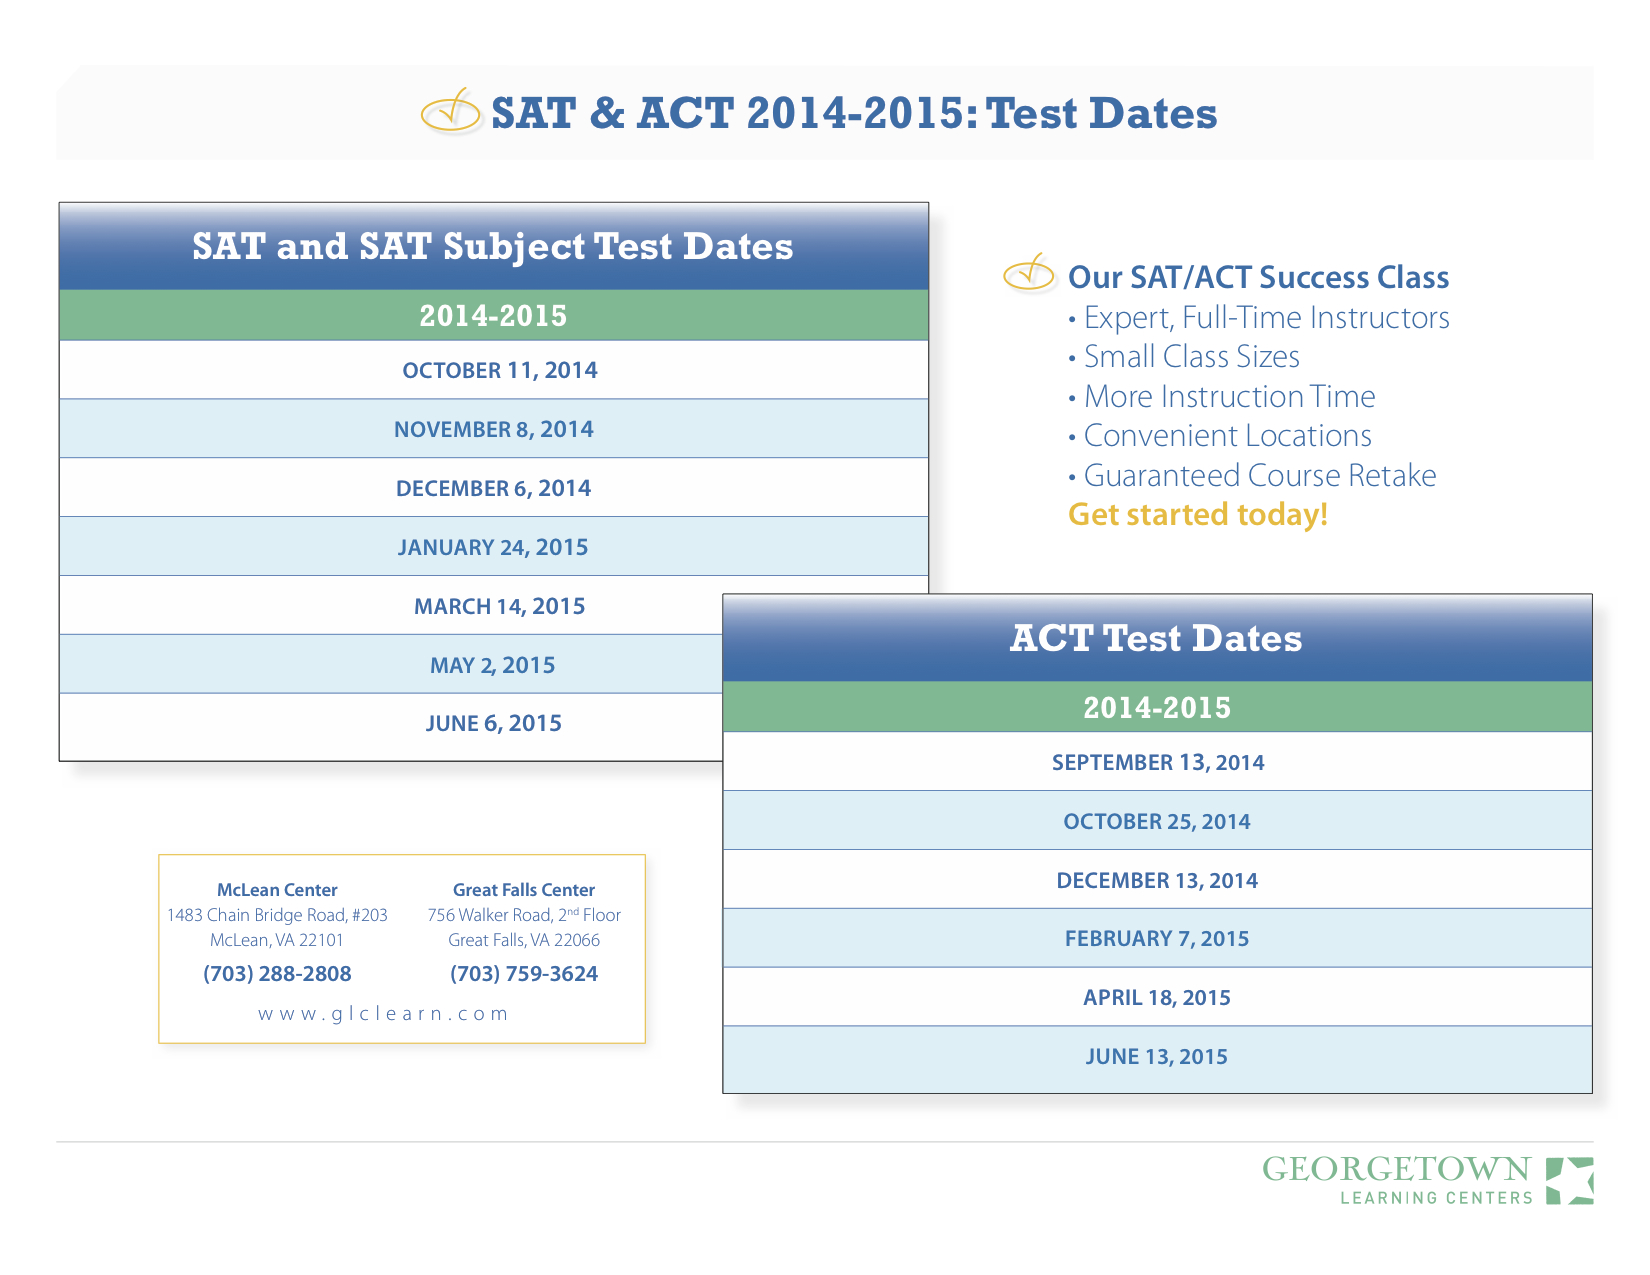 2016-17 SAT & ACT Test Dates - Academy College Coaches